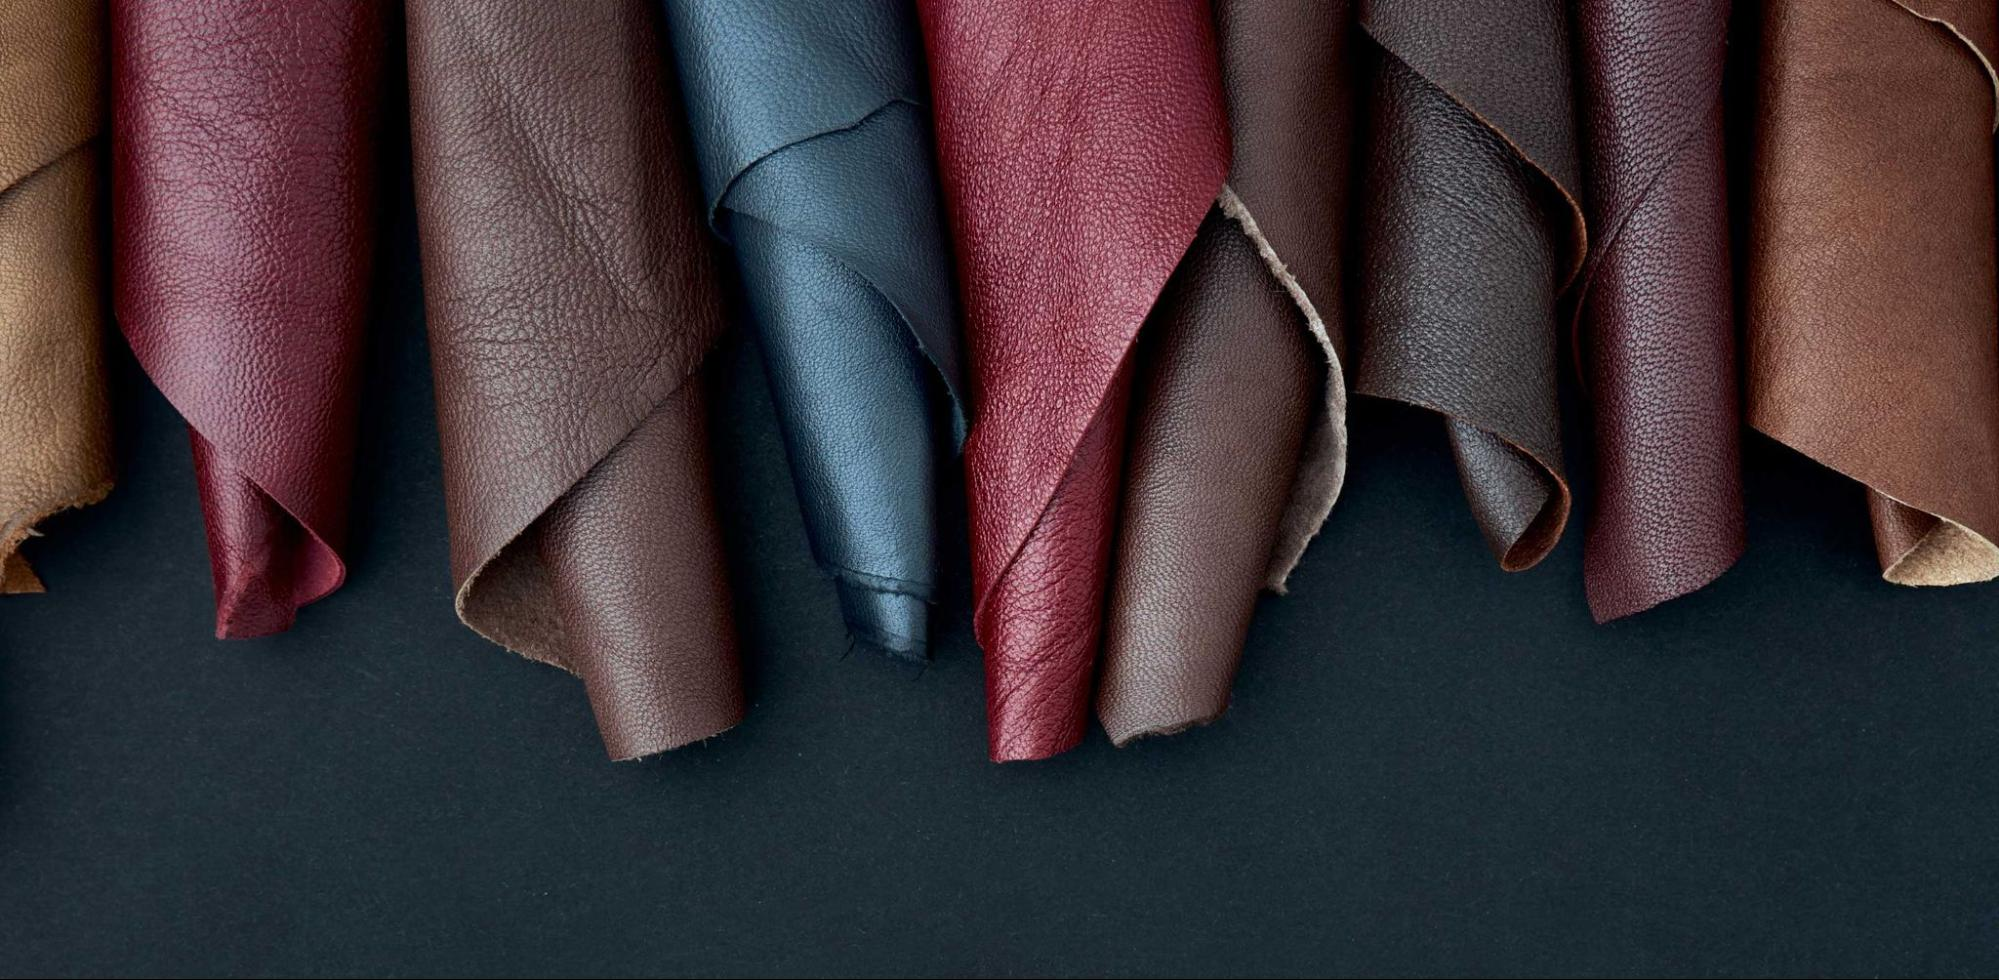 How To Dye Leather?